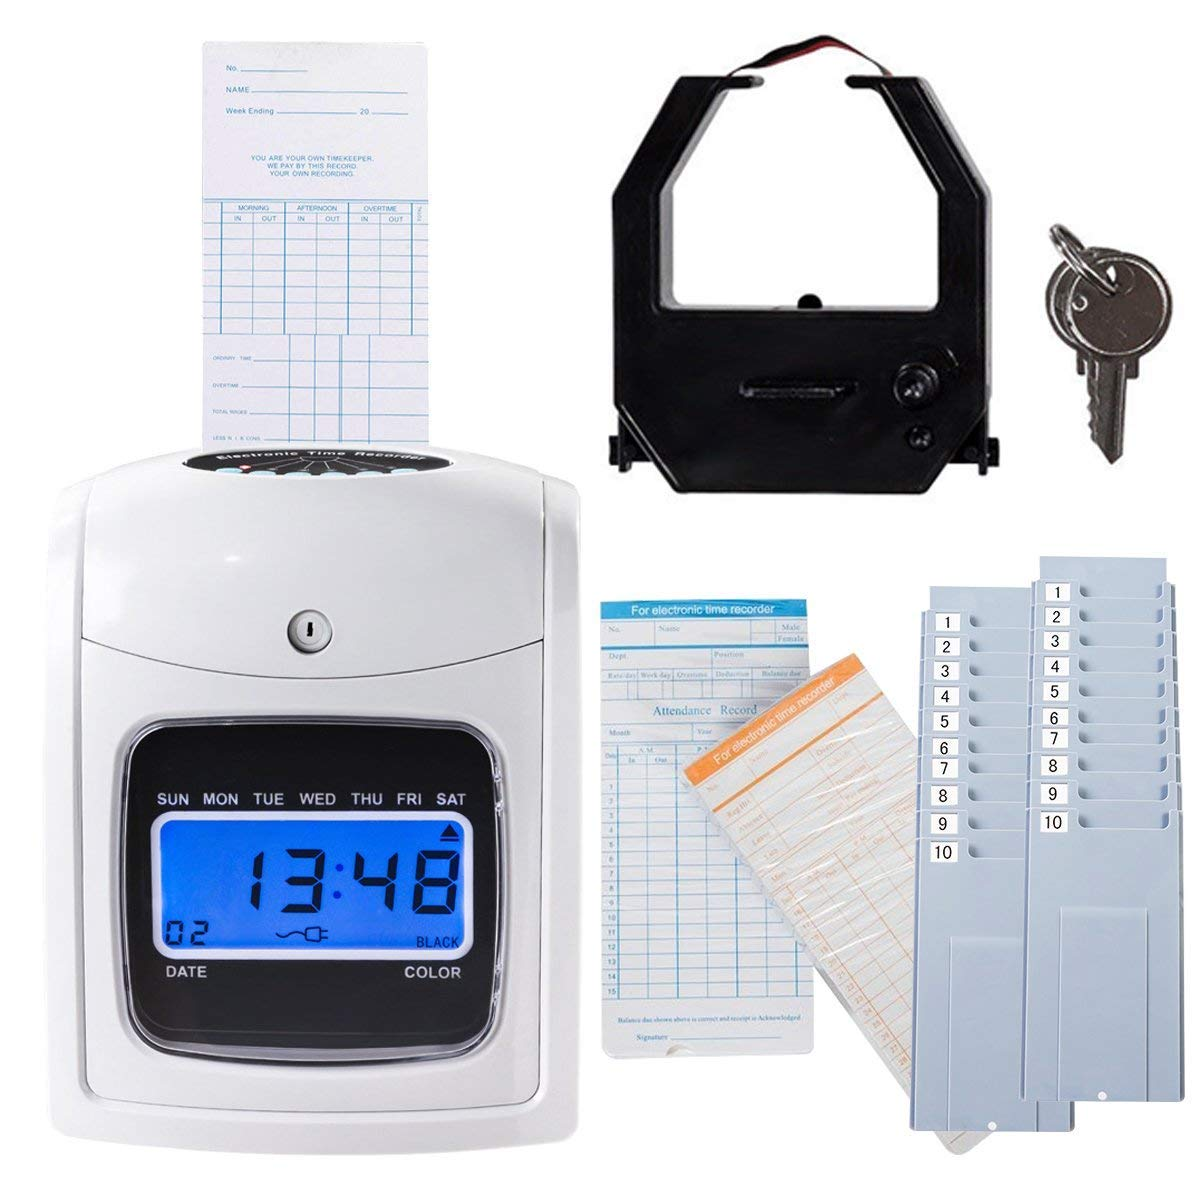 Goplus Electronic Time Clock, Employee Time Recorder with 200 Cards & 2 Time Cards Racks, Time Attendance Clock (White) by Goplus